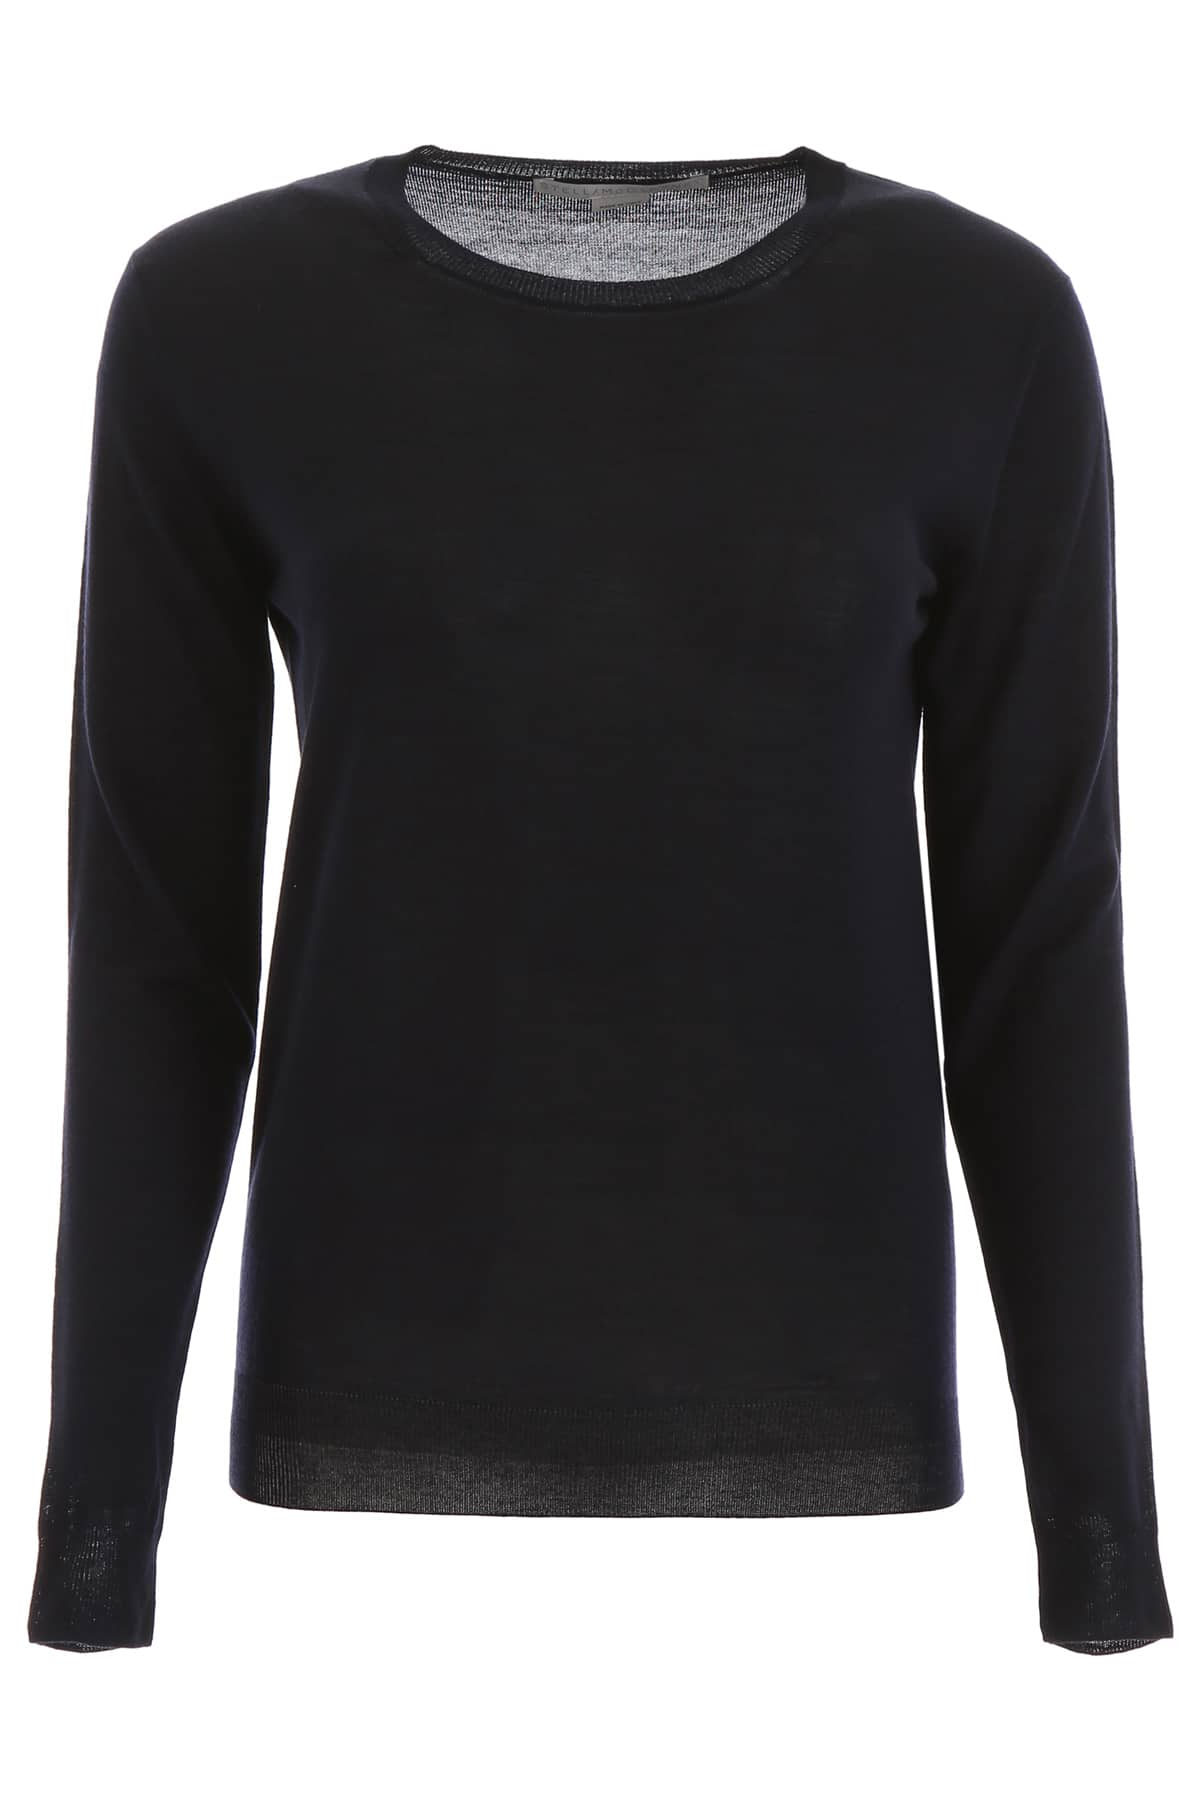 STELLA McCARTNEY CREW NECK PULLOVER 42 Blue Wool